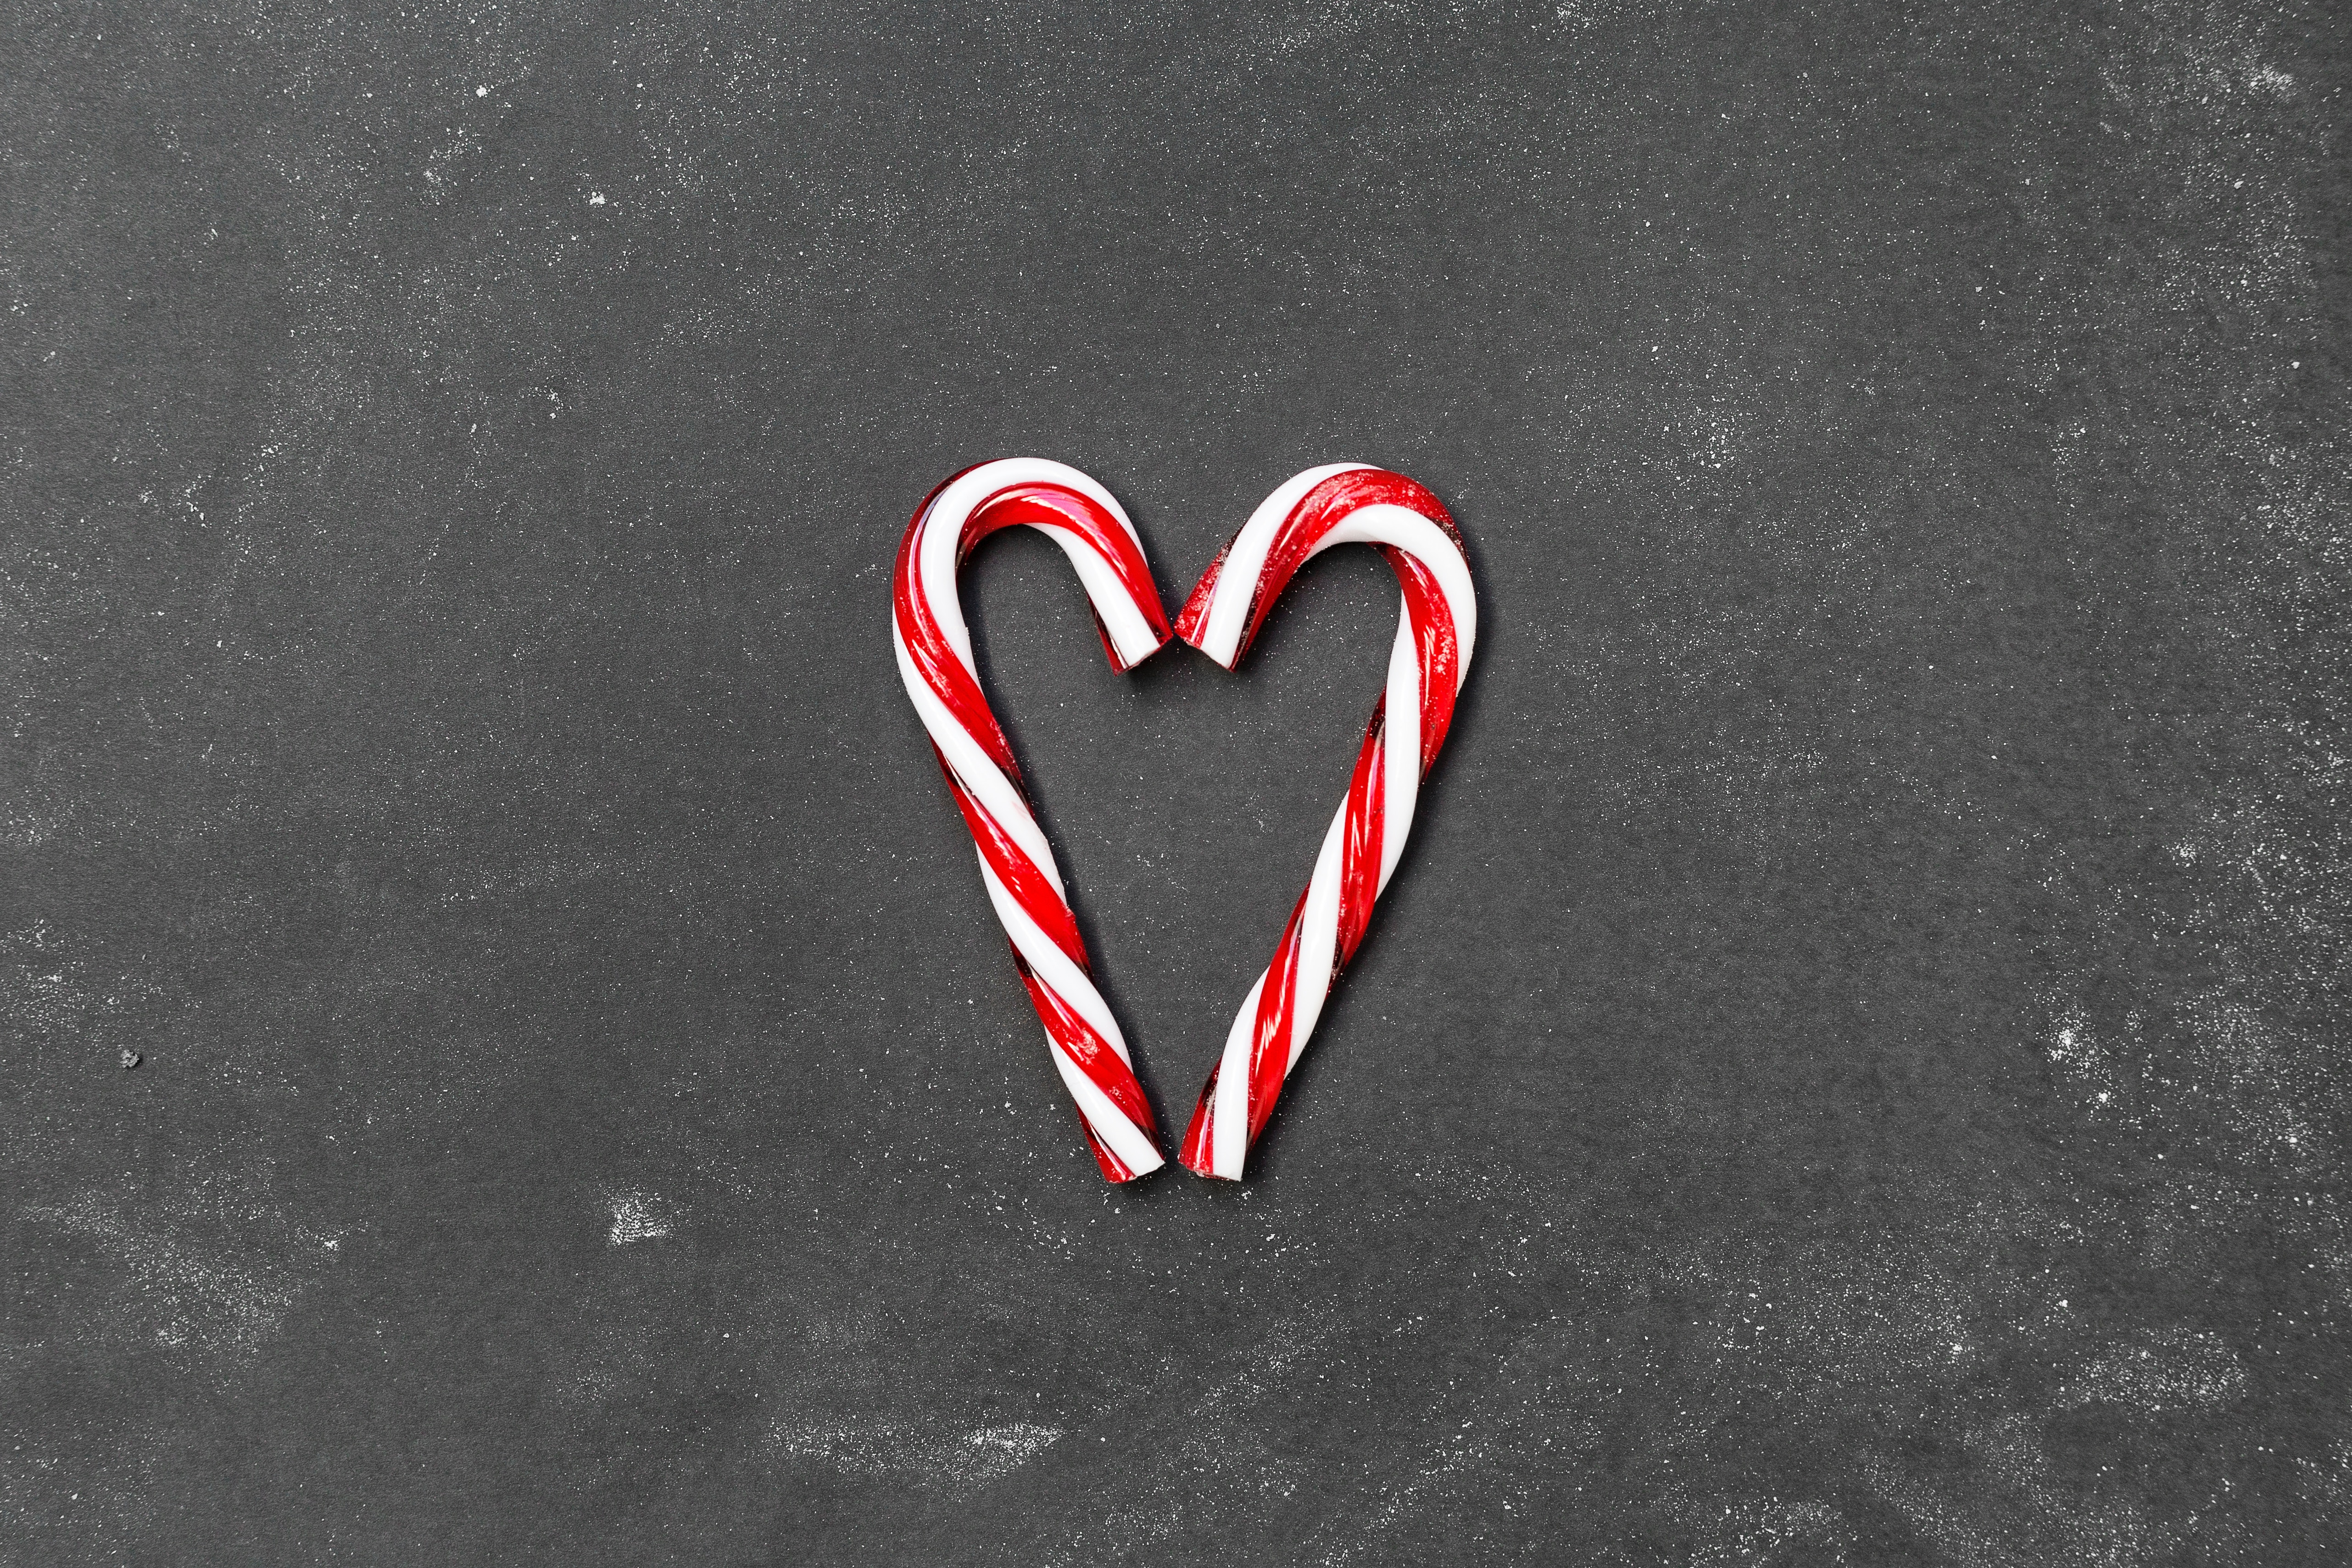 Two candy canes in the shape of a heart